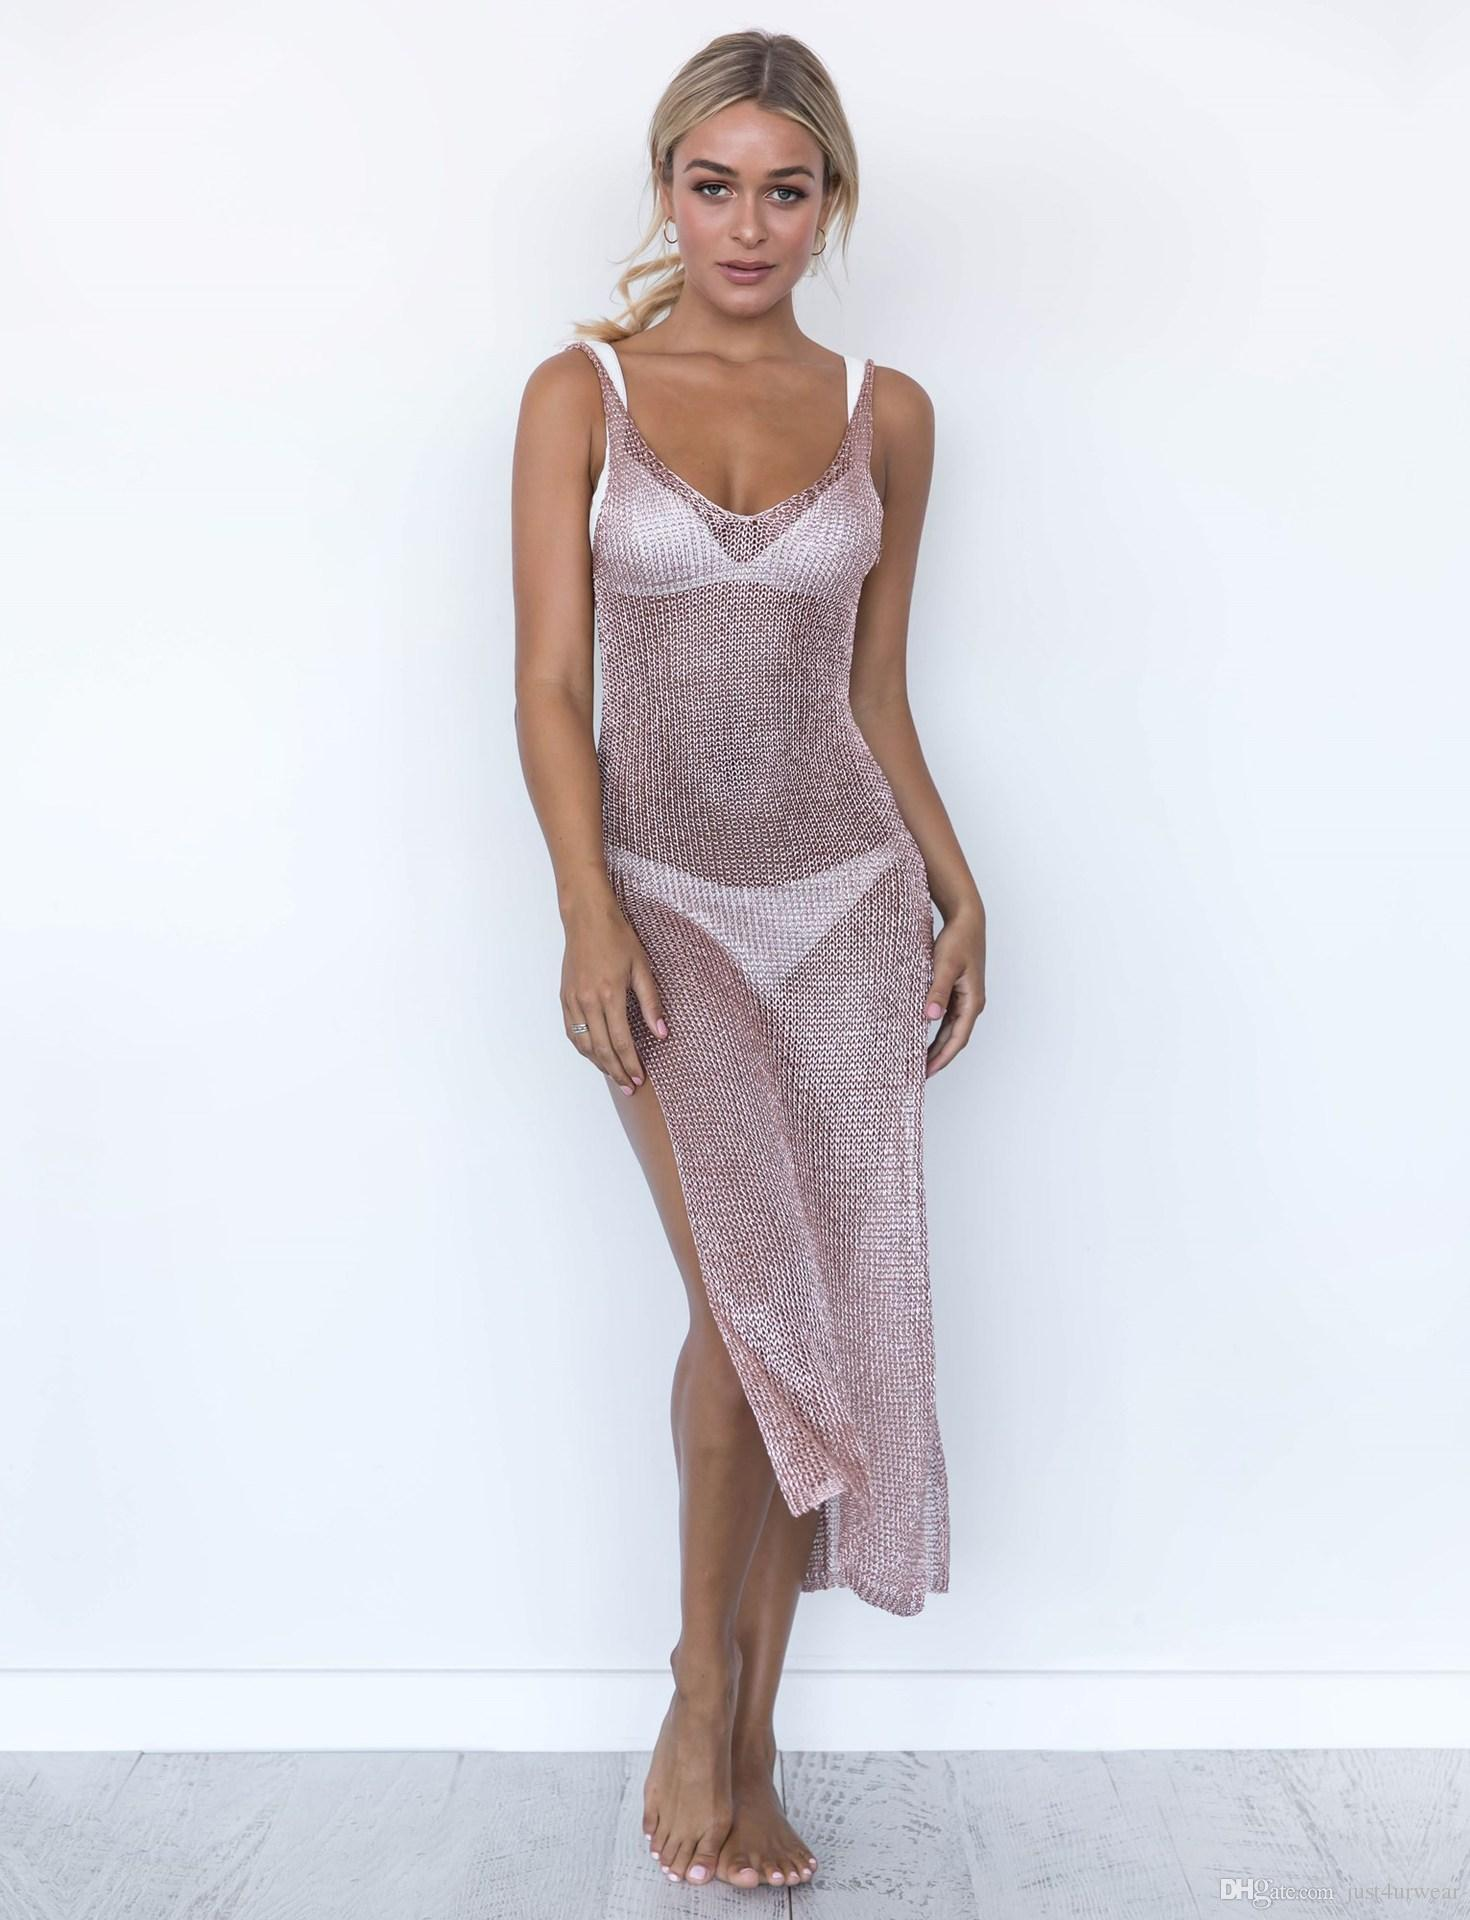 Women Sexy Beach Cover-ups Hollow Out Knitted Split Up Tank Top Long Dress Cover Body Sheath Wear Seaside